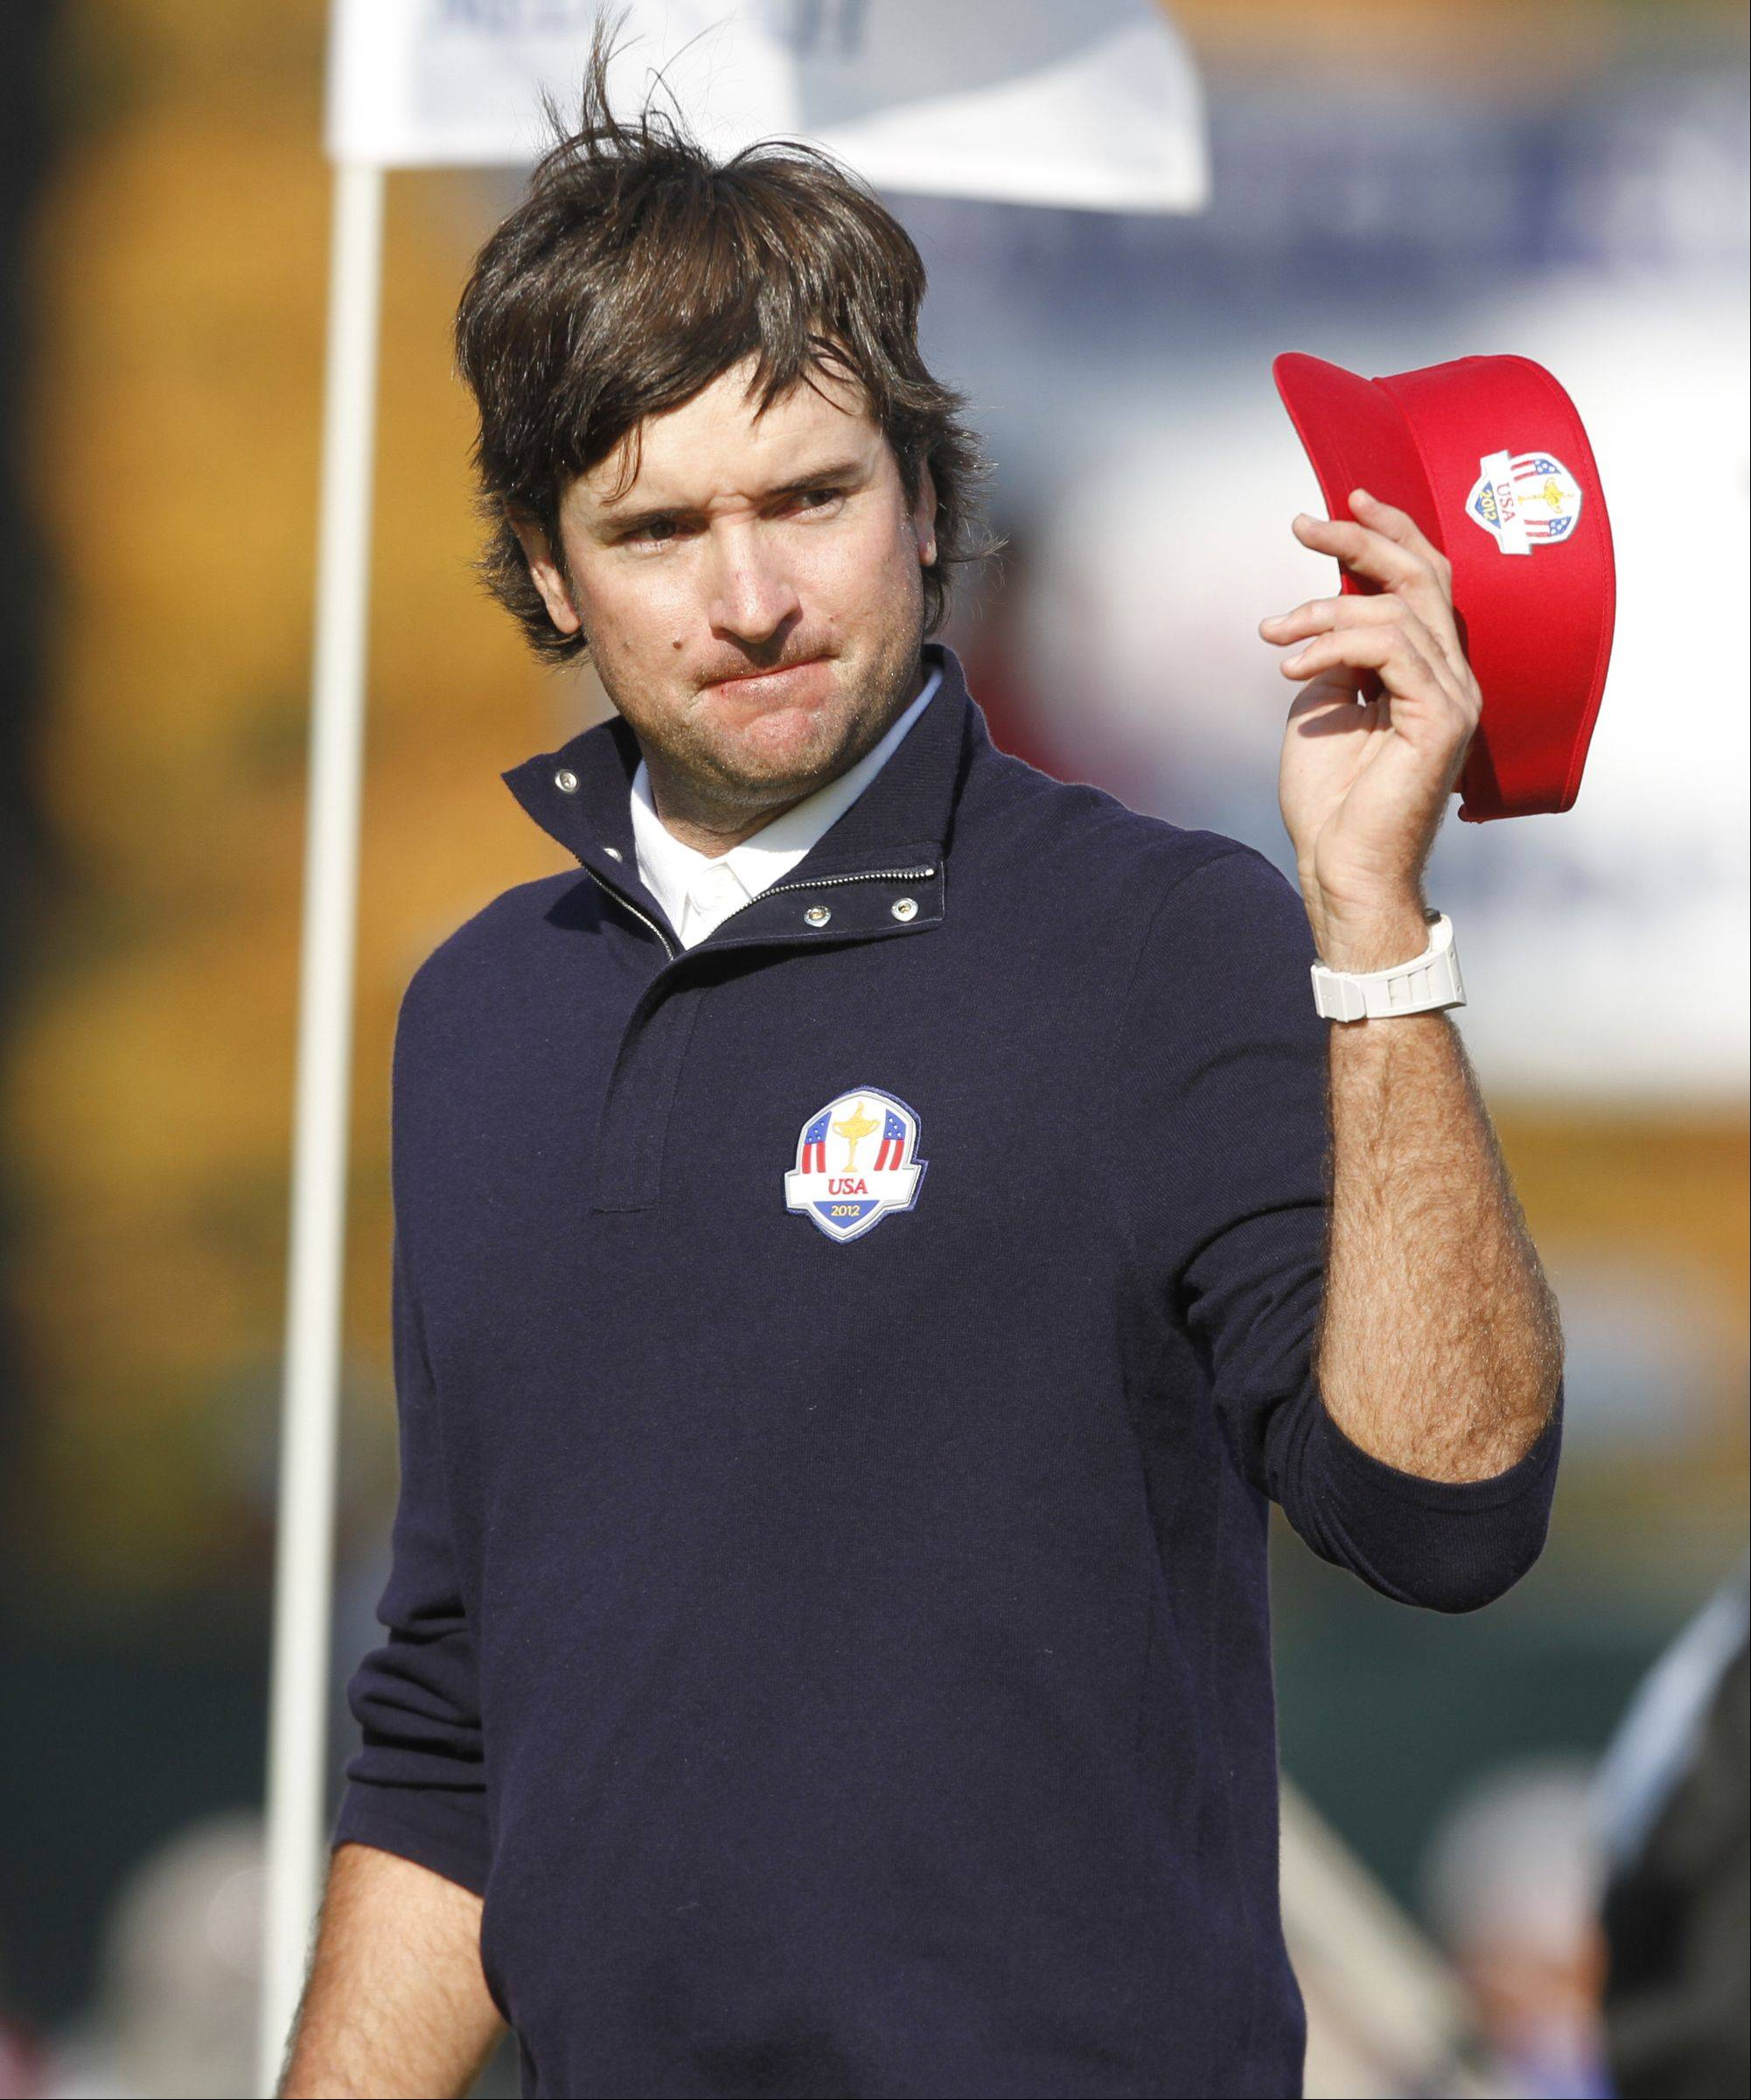 Bubba Watson waives to the Ryder Cup crowd on the 14th hole after winning his afternoon match Friday at Medinah Country Club.